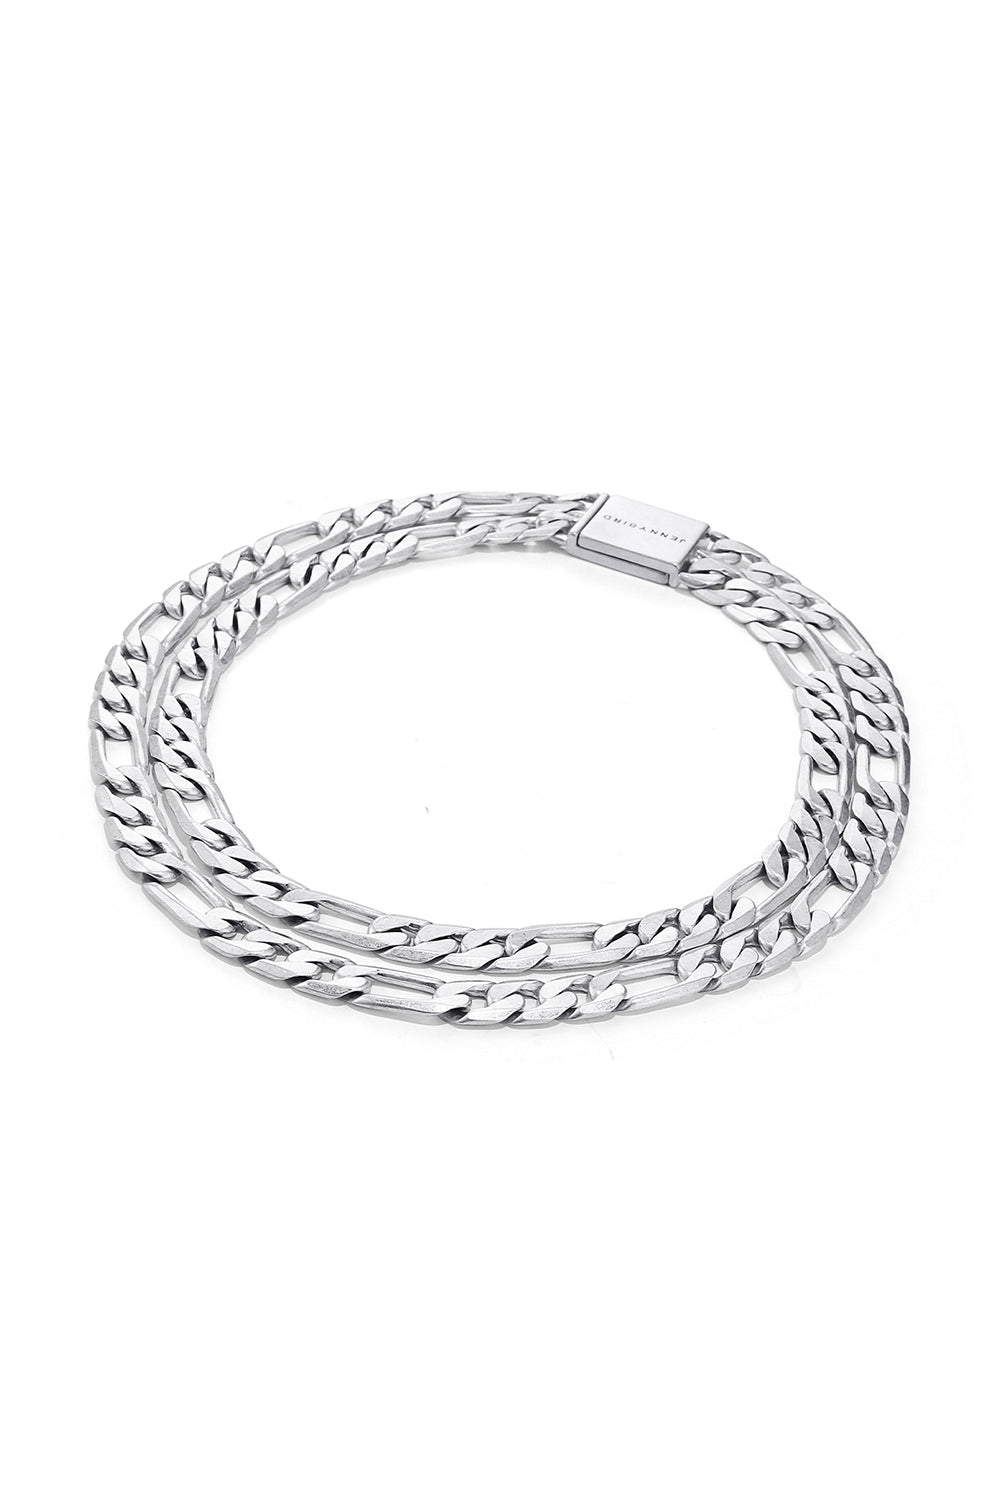 JENNY BIRD - DOUBLE CARTER CHOKER SILVER